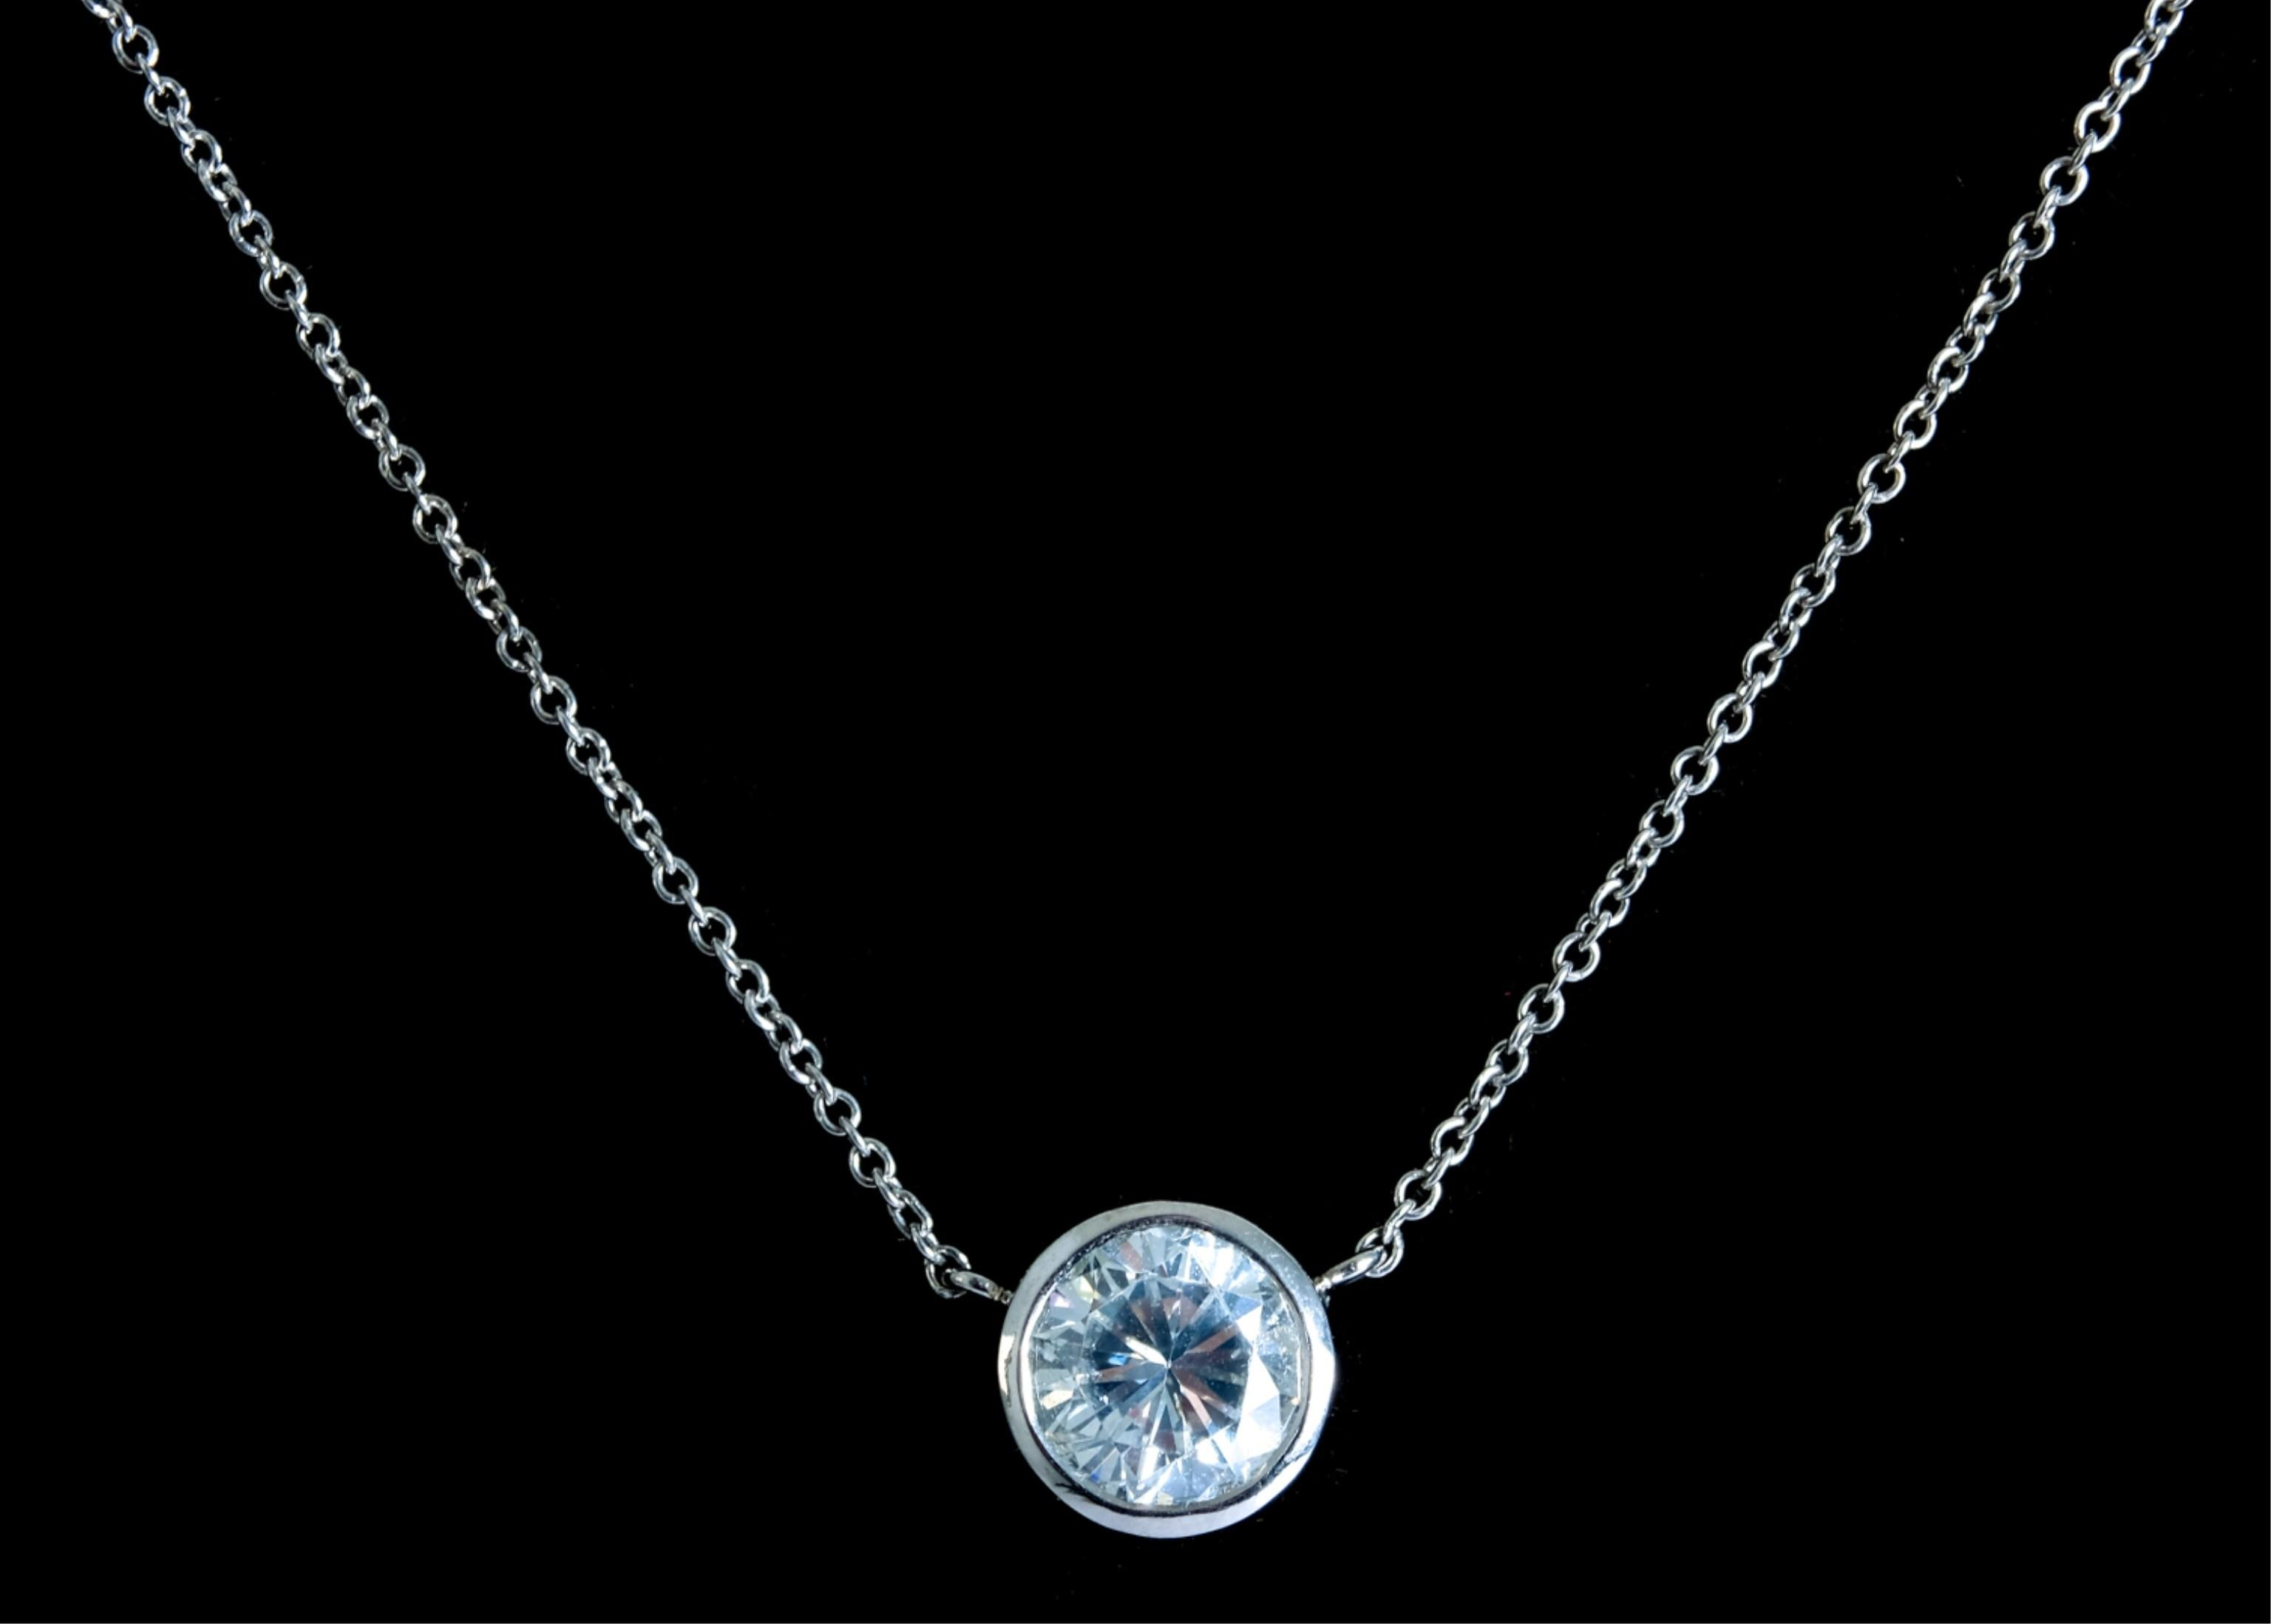 Italian 14k WG & 1CT Diamond Pendant Necklace